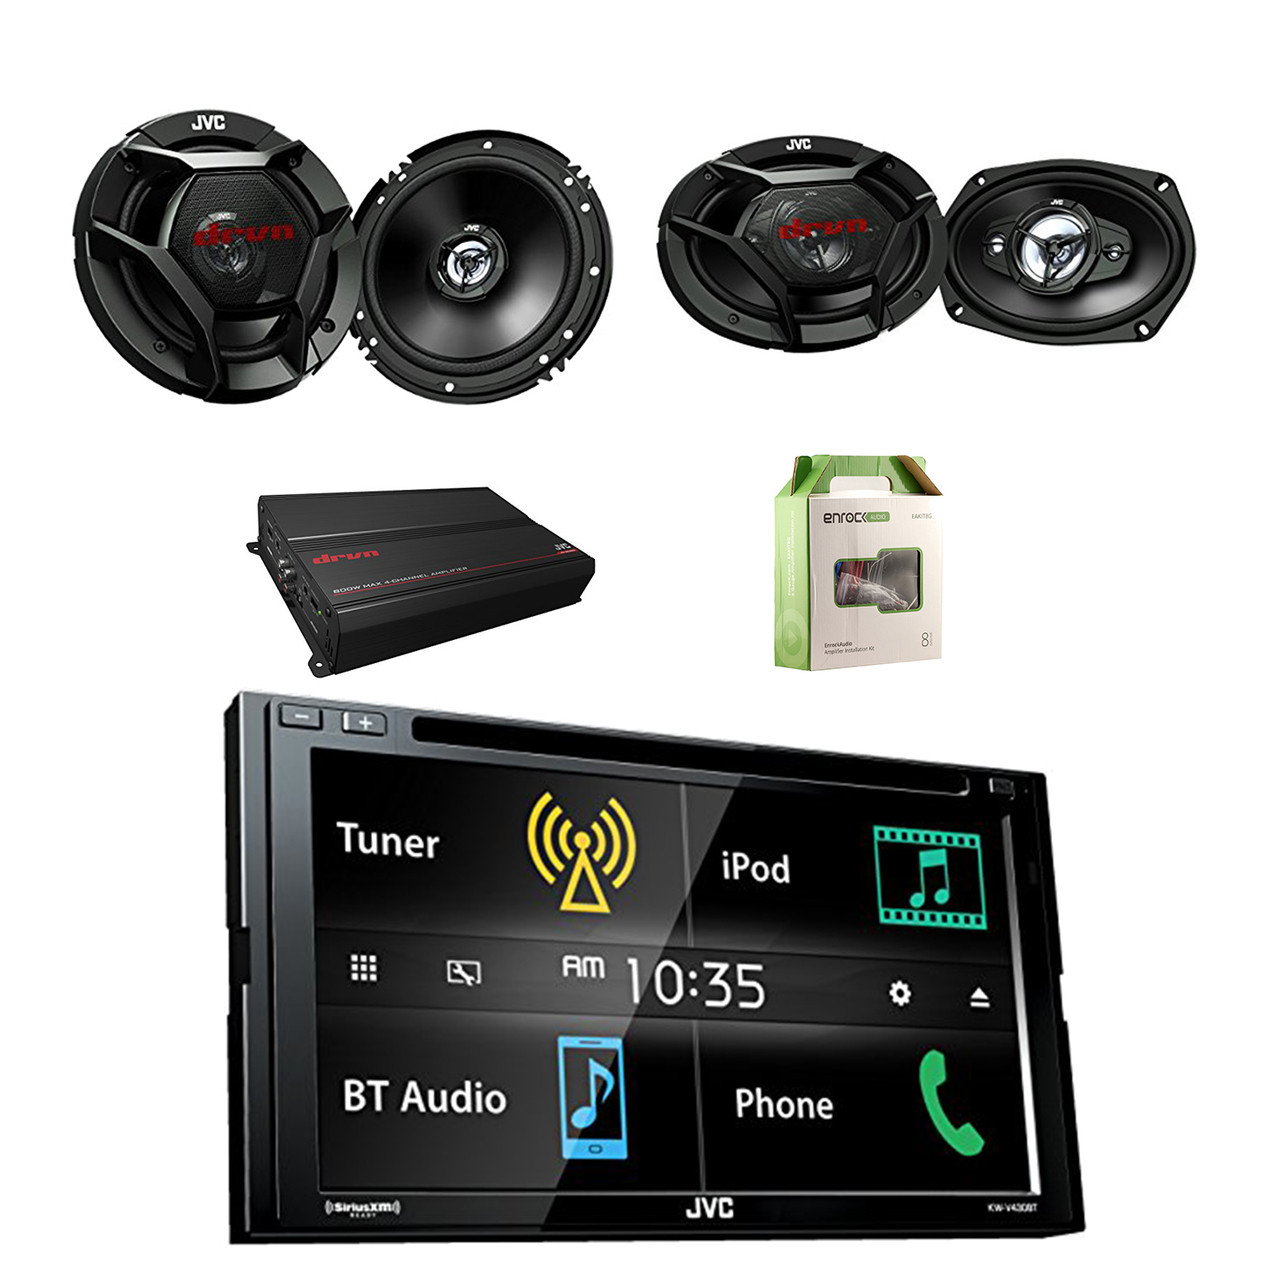 hight resolution of jvc double din bluetooth lcd touchscreen mp3 car stereo receiver w jvc 2 way factory upgrade coaxial speakers pair jvc 4 way speakers pair jvc 4 chan dr